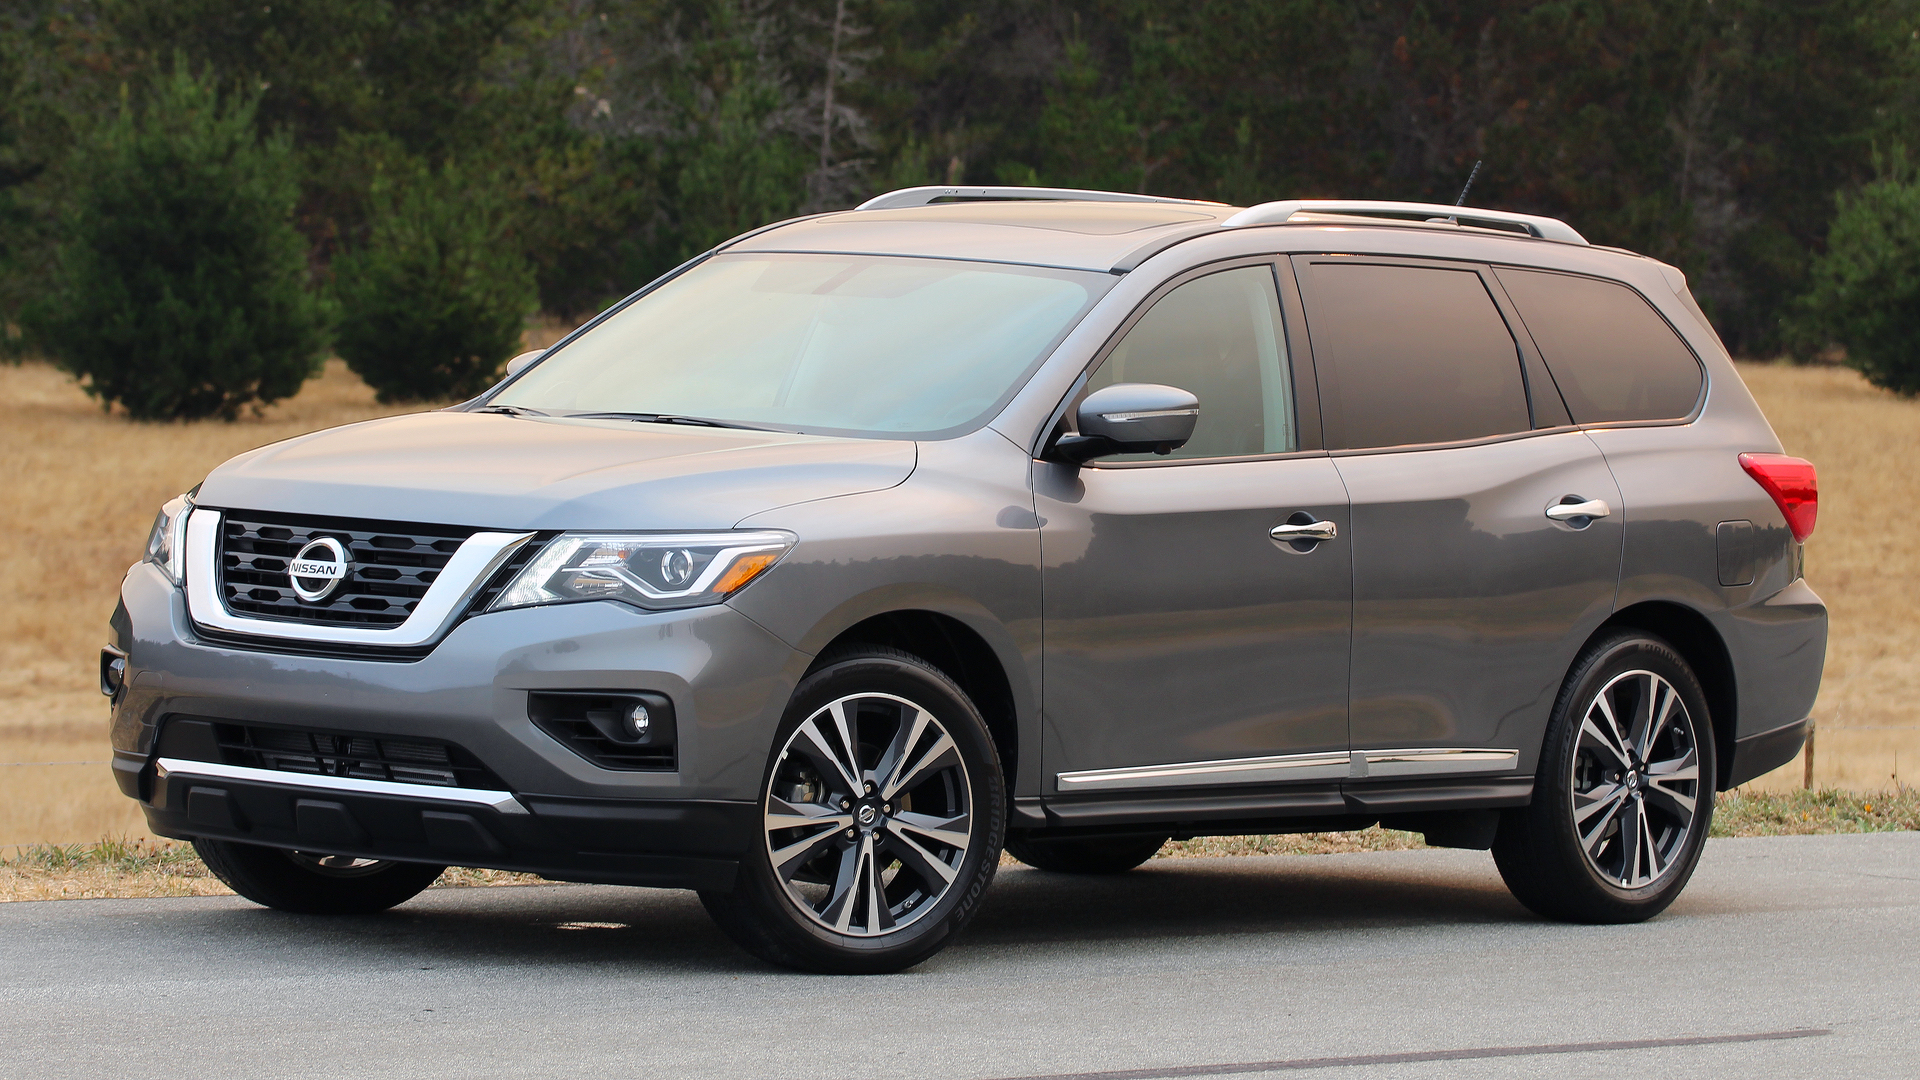 en ga auctions nissan for pathfinder blue title on atlanta of online in carfinder cert lot left copart salvage west auto view sale